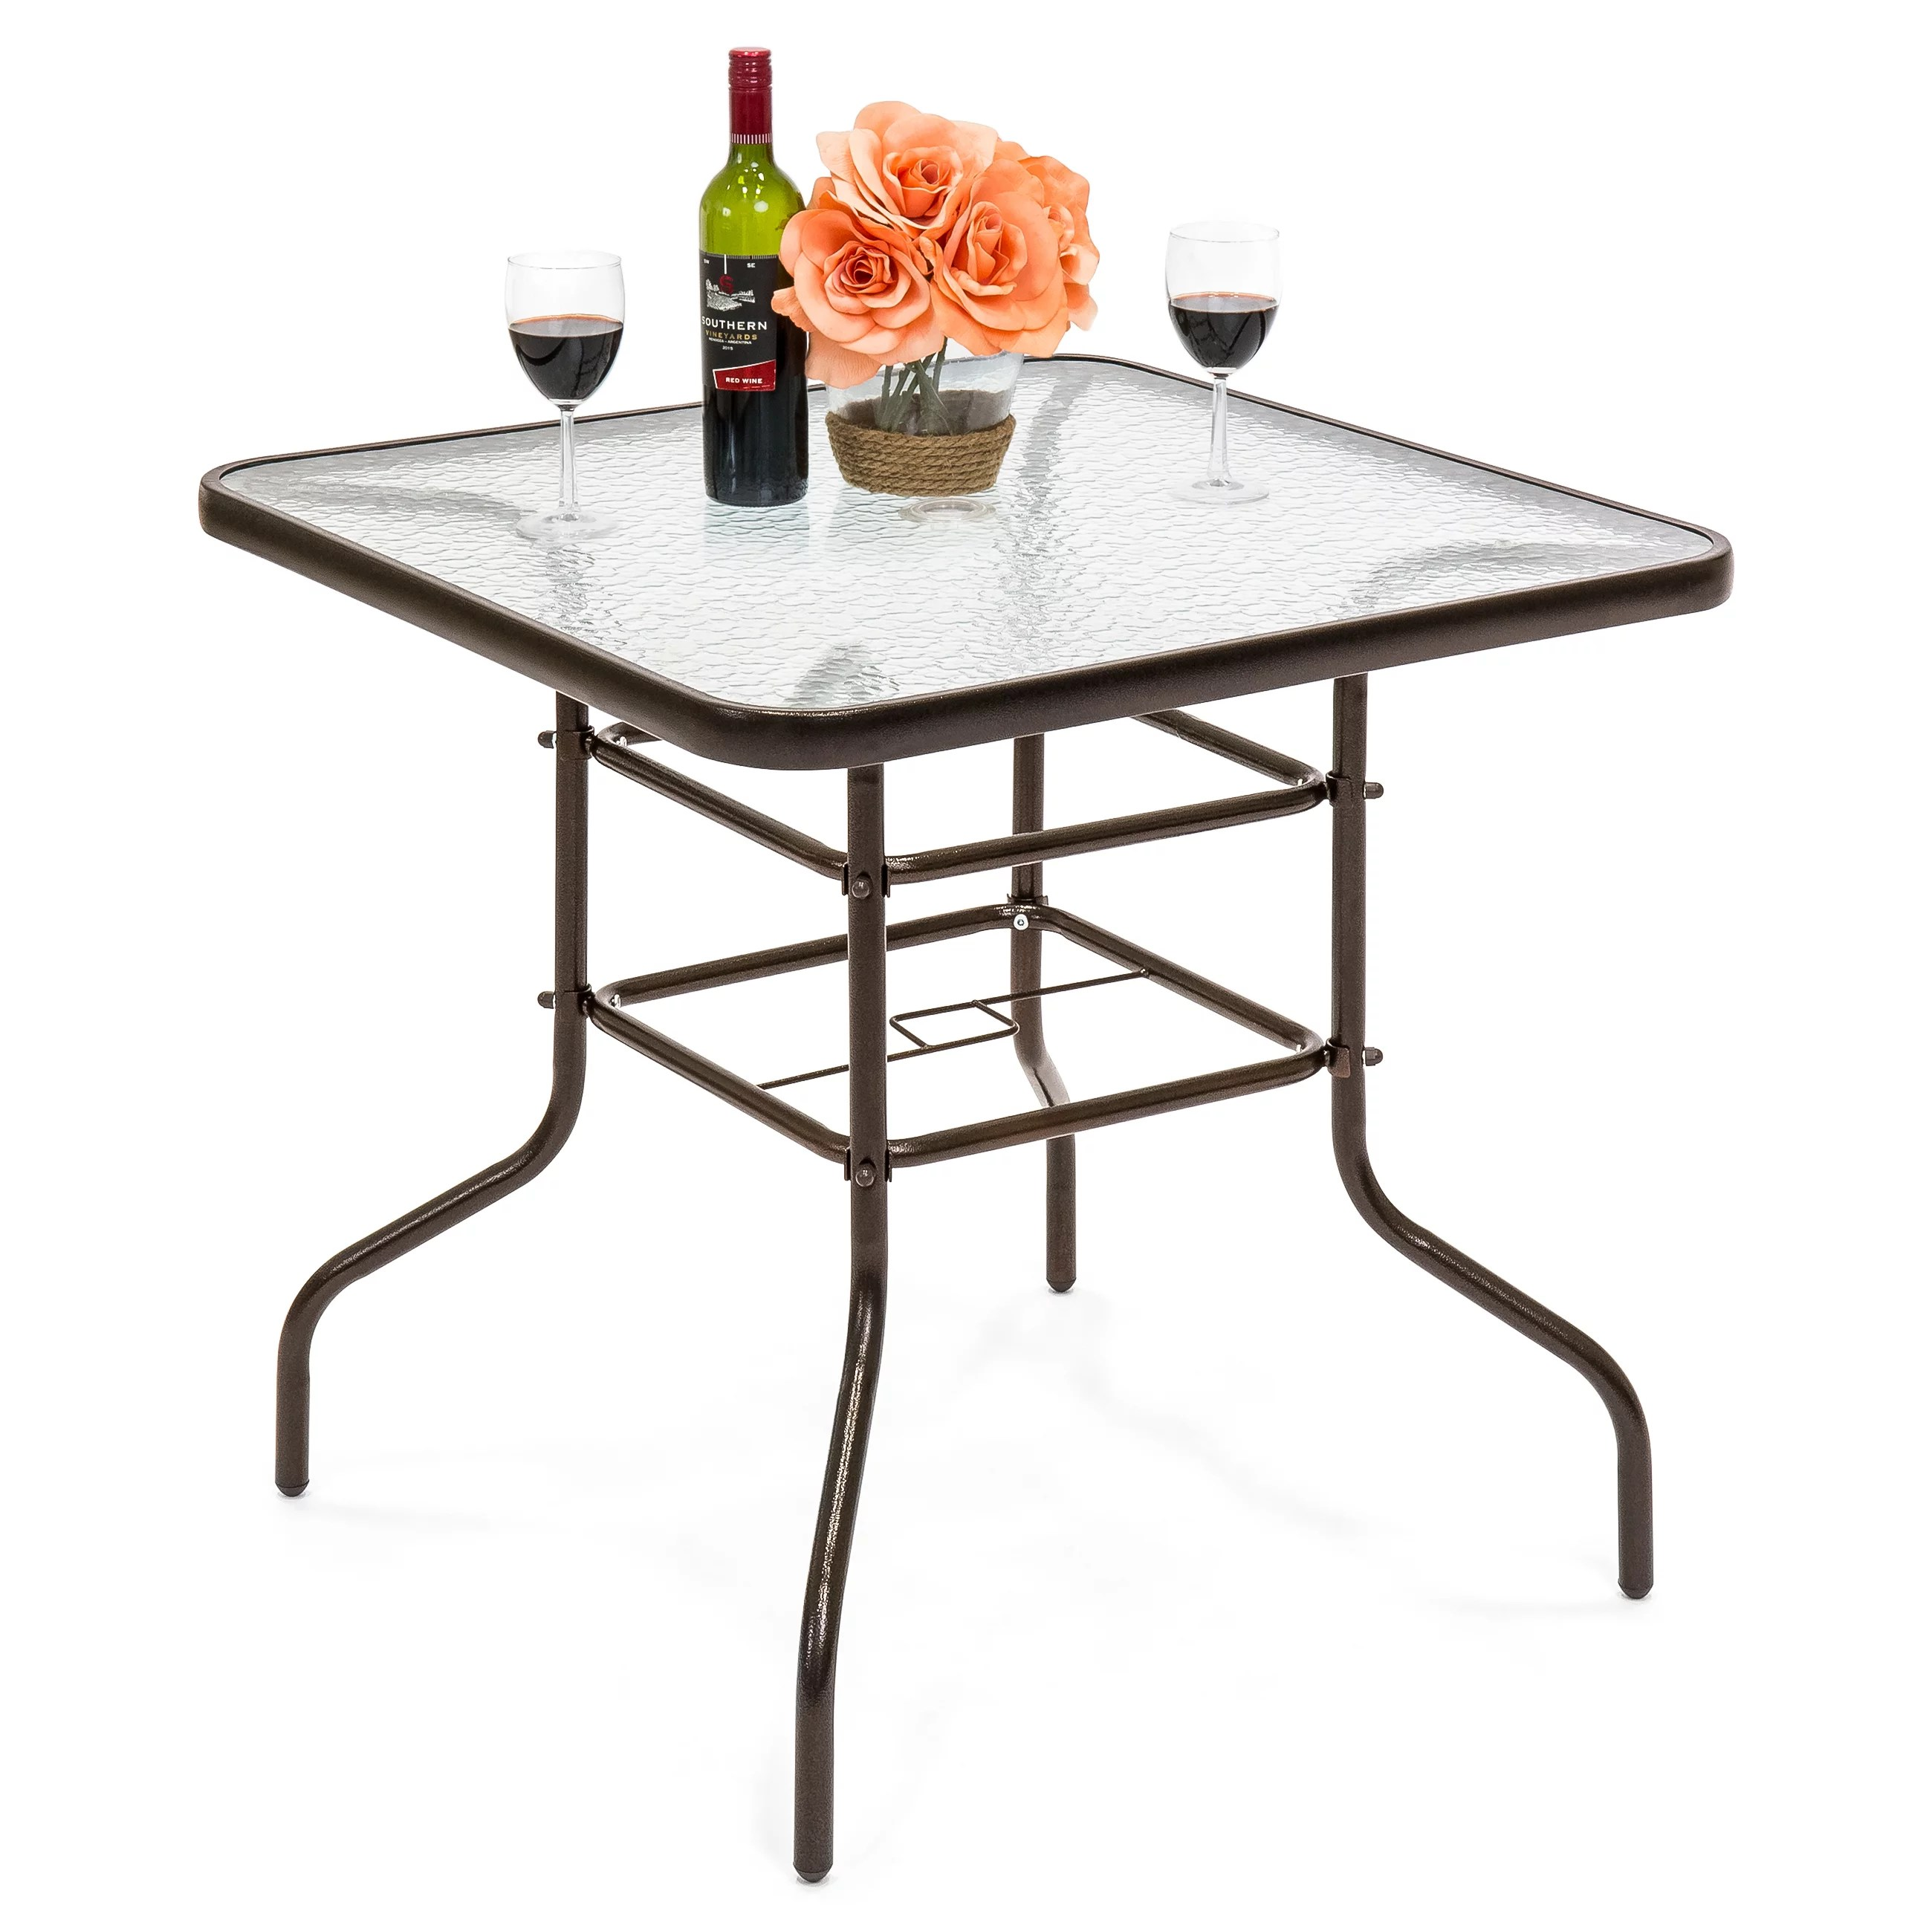 best choice products 32in square tempered glass outdoor patio dining bistro table w umbrella hole steel frame walmart com